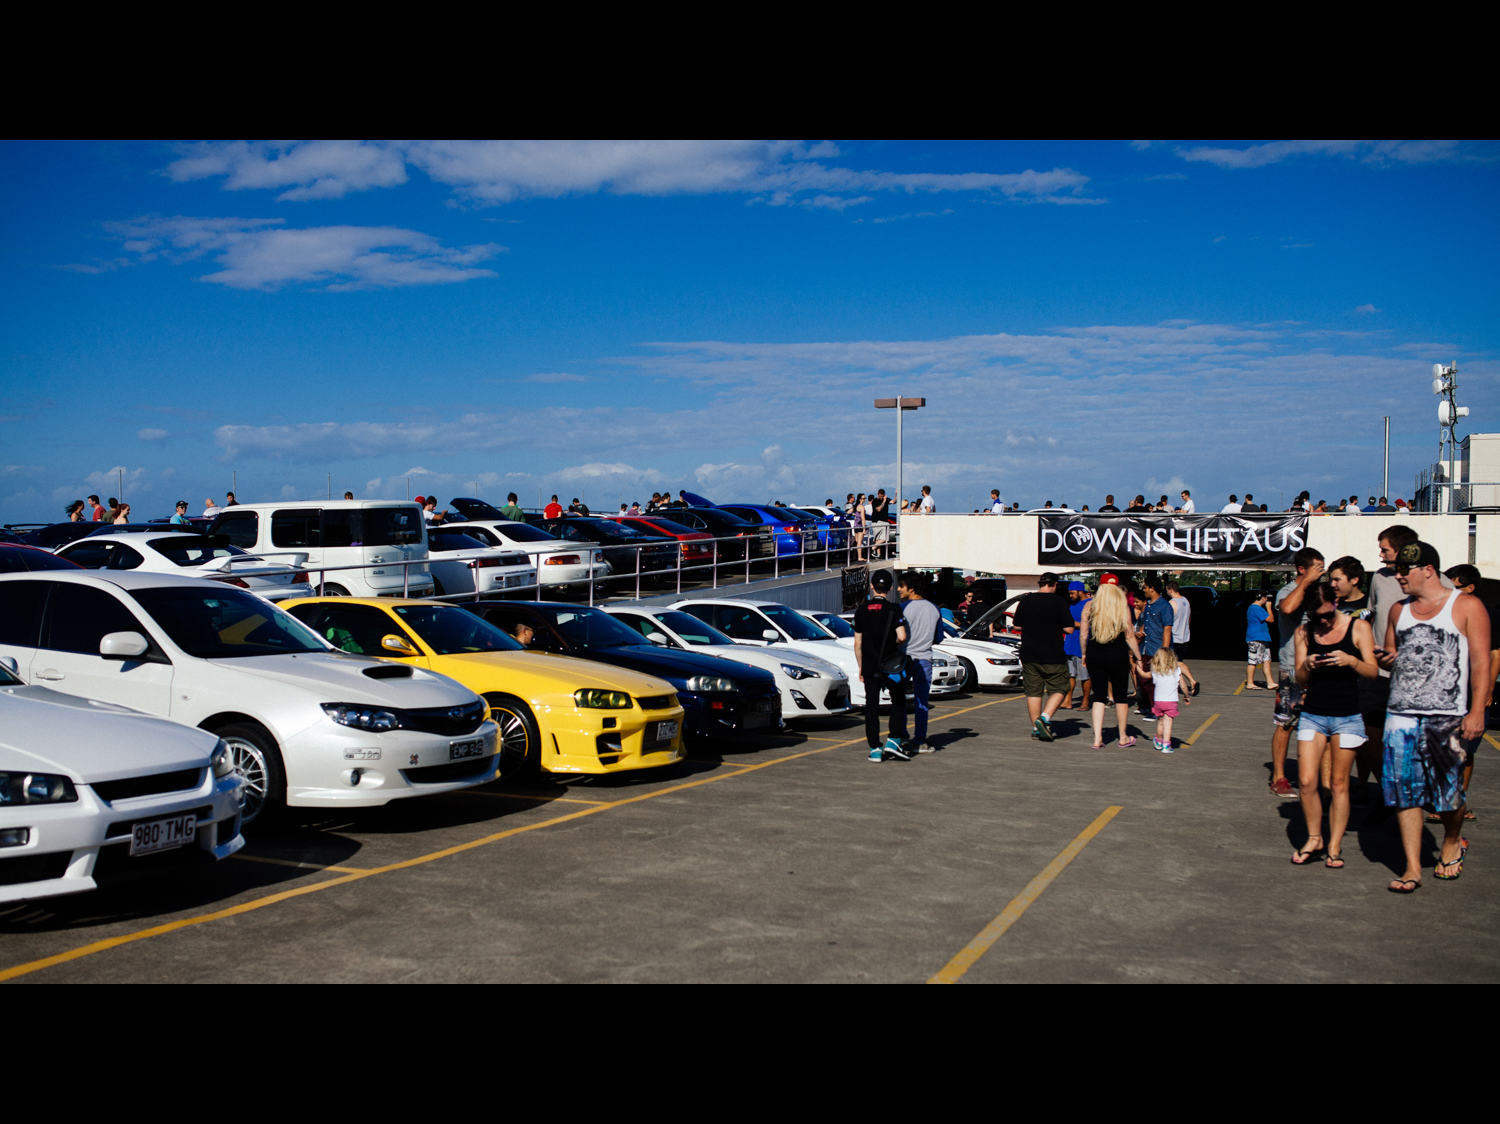 Thanks Downshift for the great day!